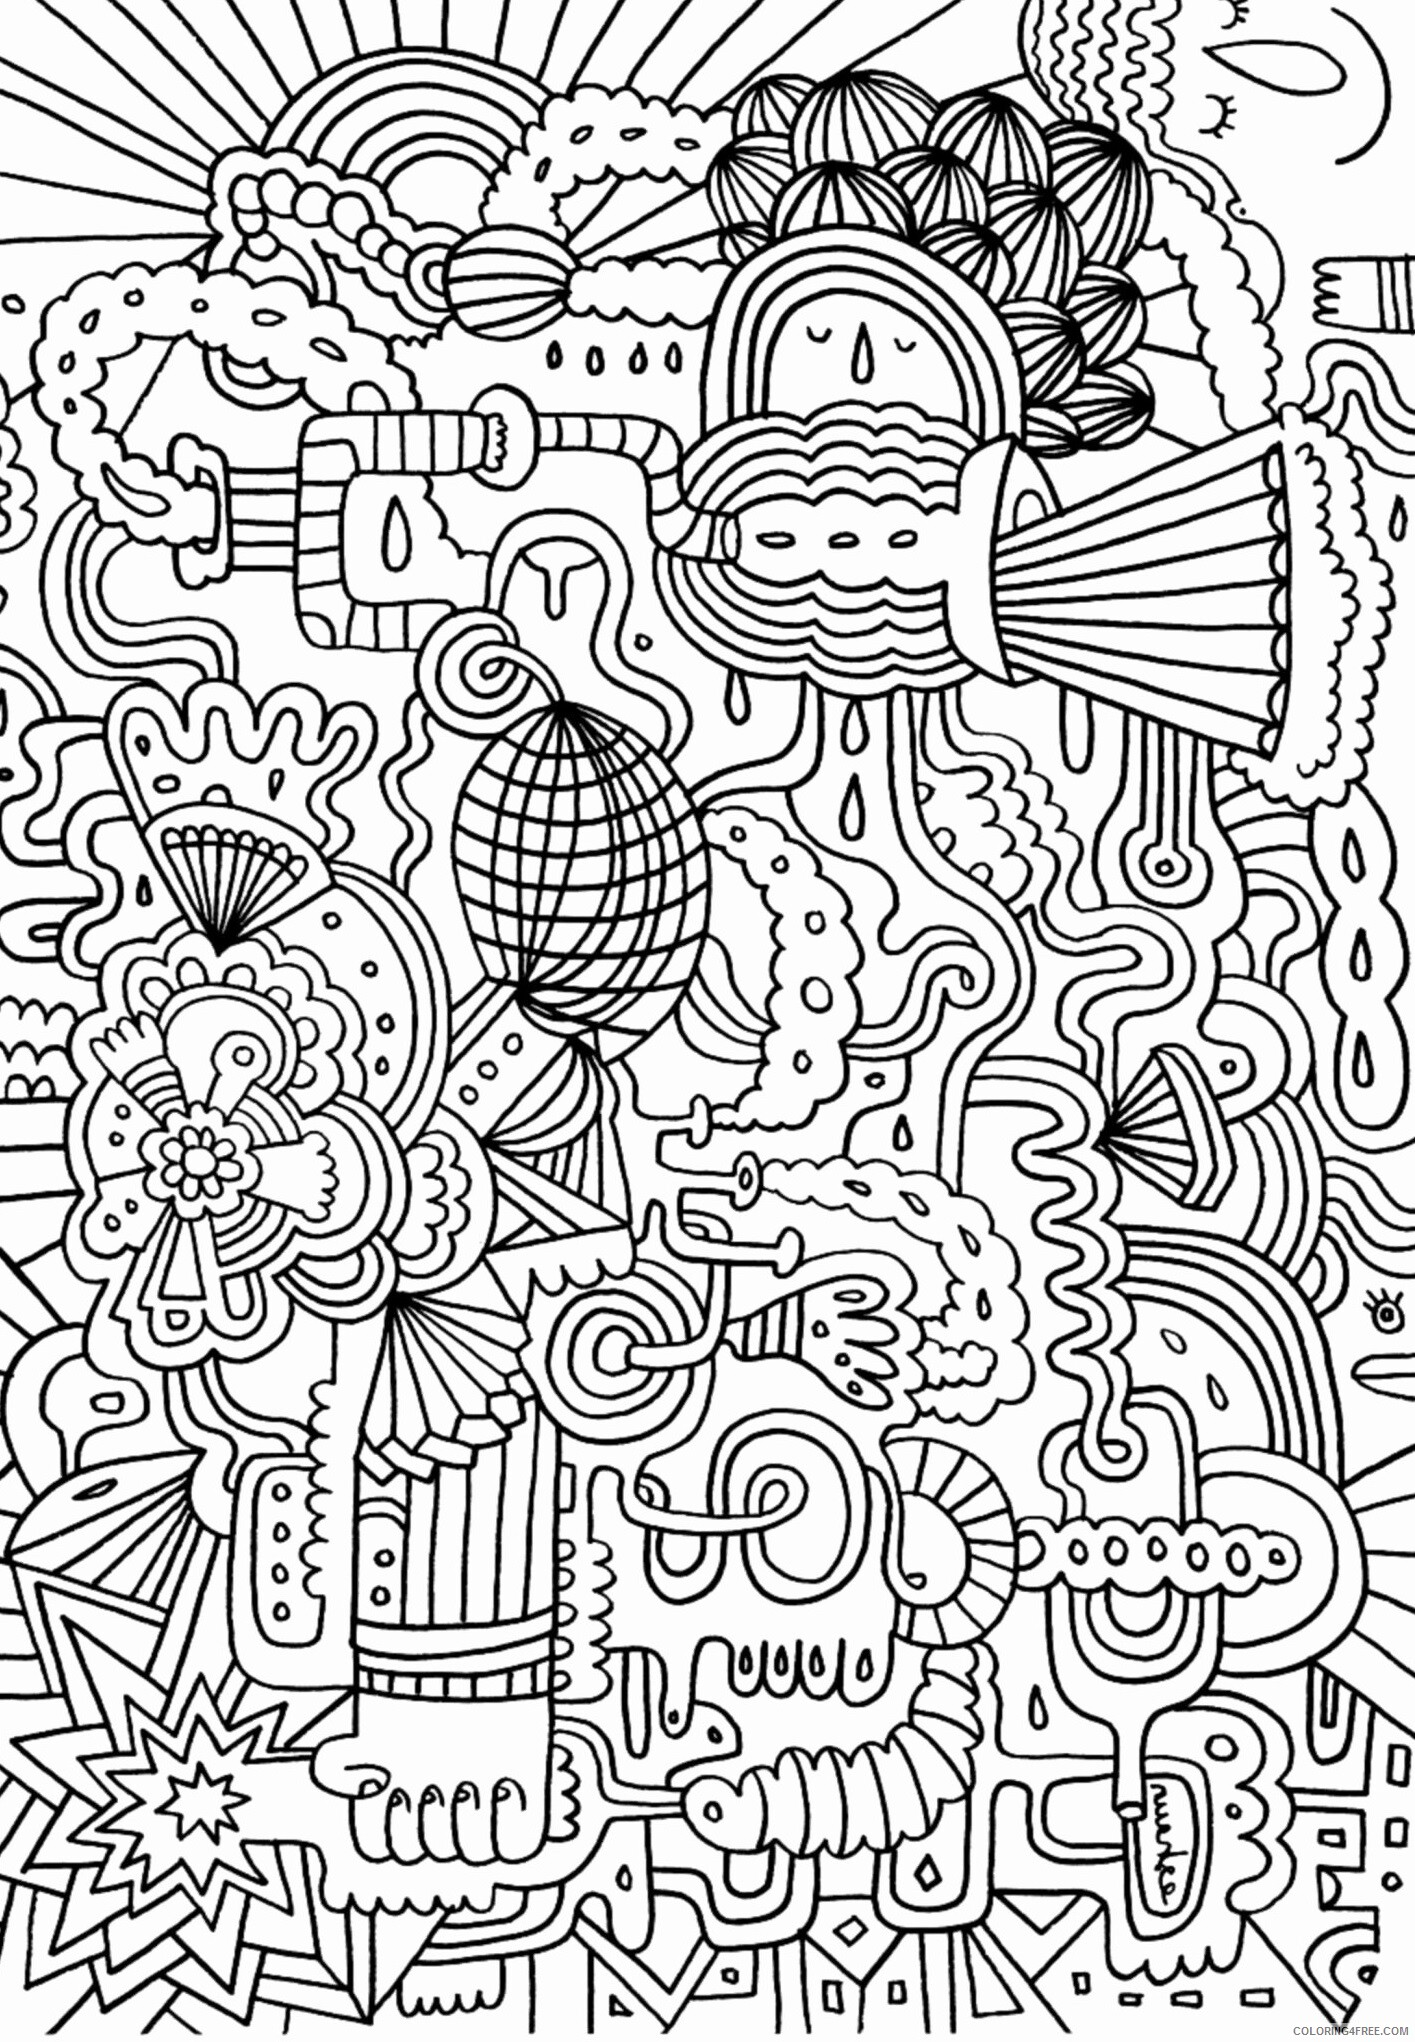 Complex Coloring Pages Adult Complex Doodle Printable 2020 222 Coloring4free